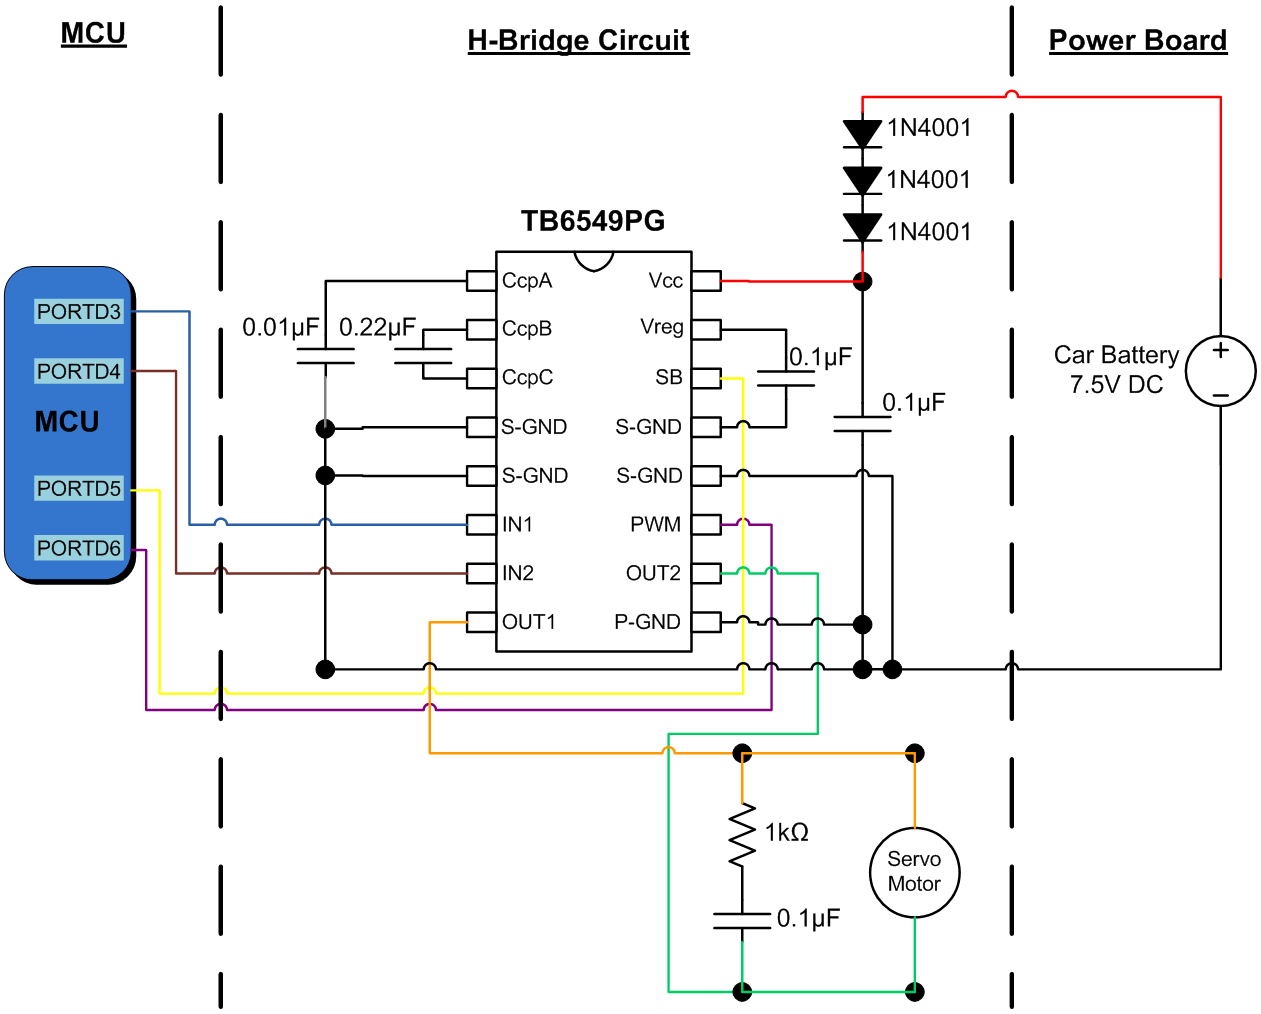 Ece 4760 The Autonomous Driving Car Infrared Controls Wiring Diagram H Bridge Circuit